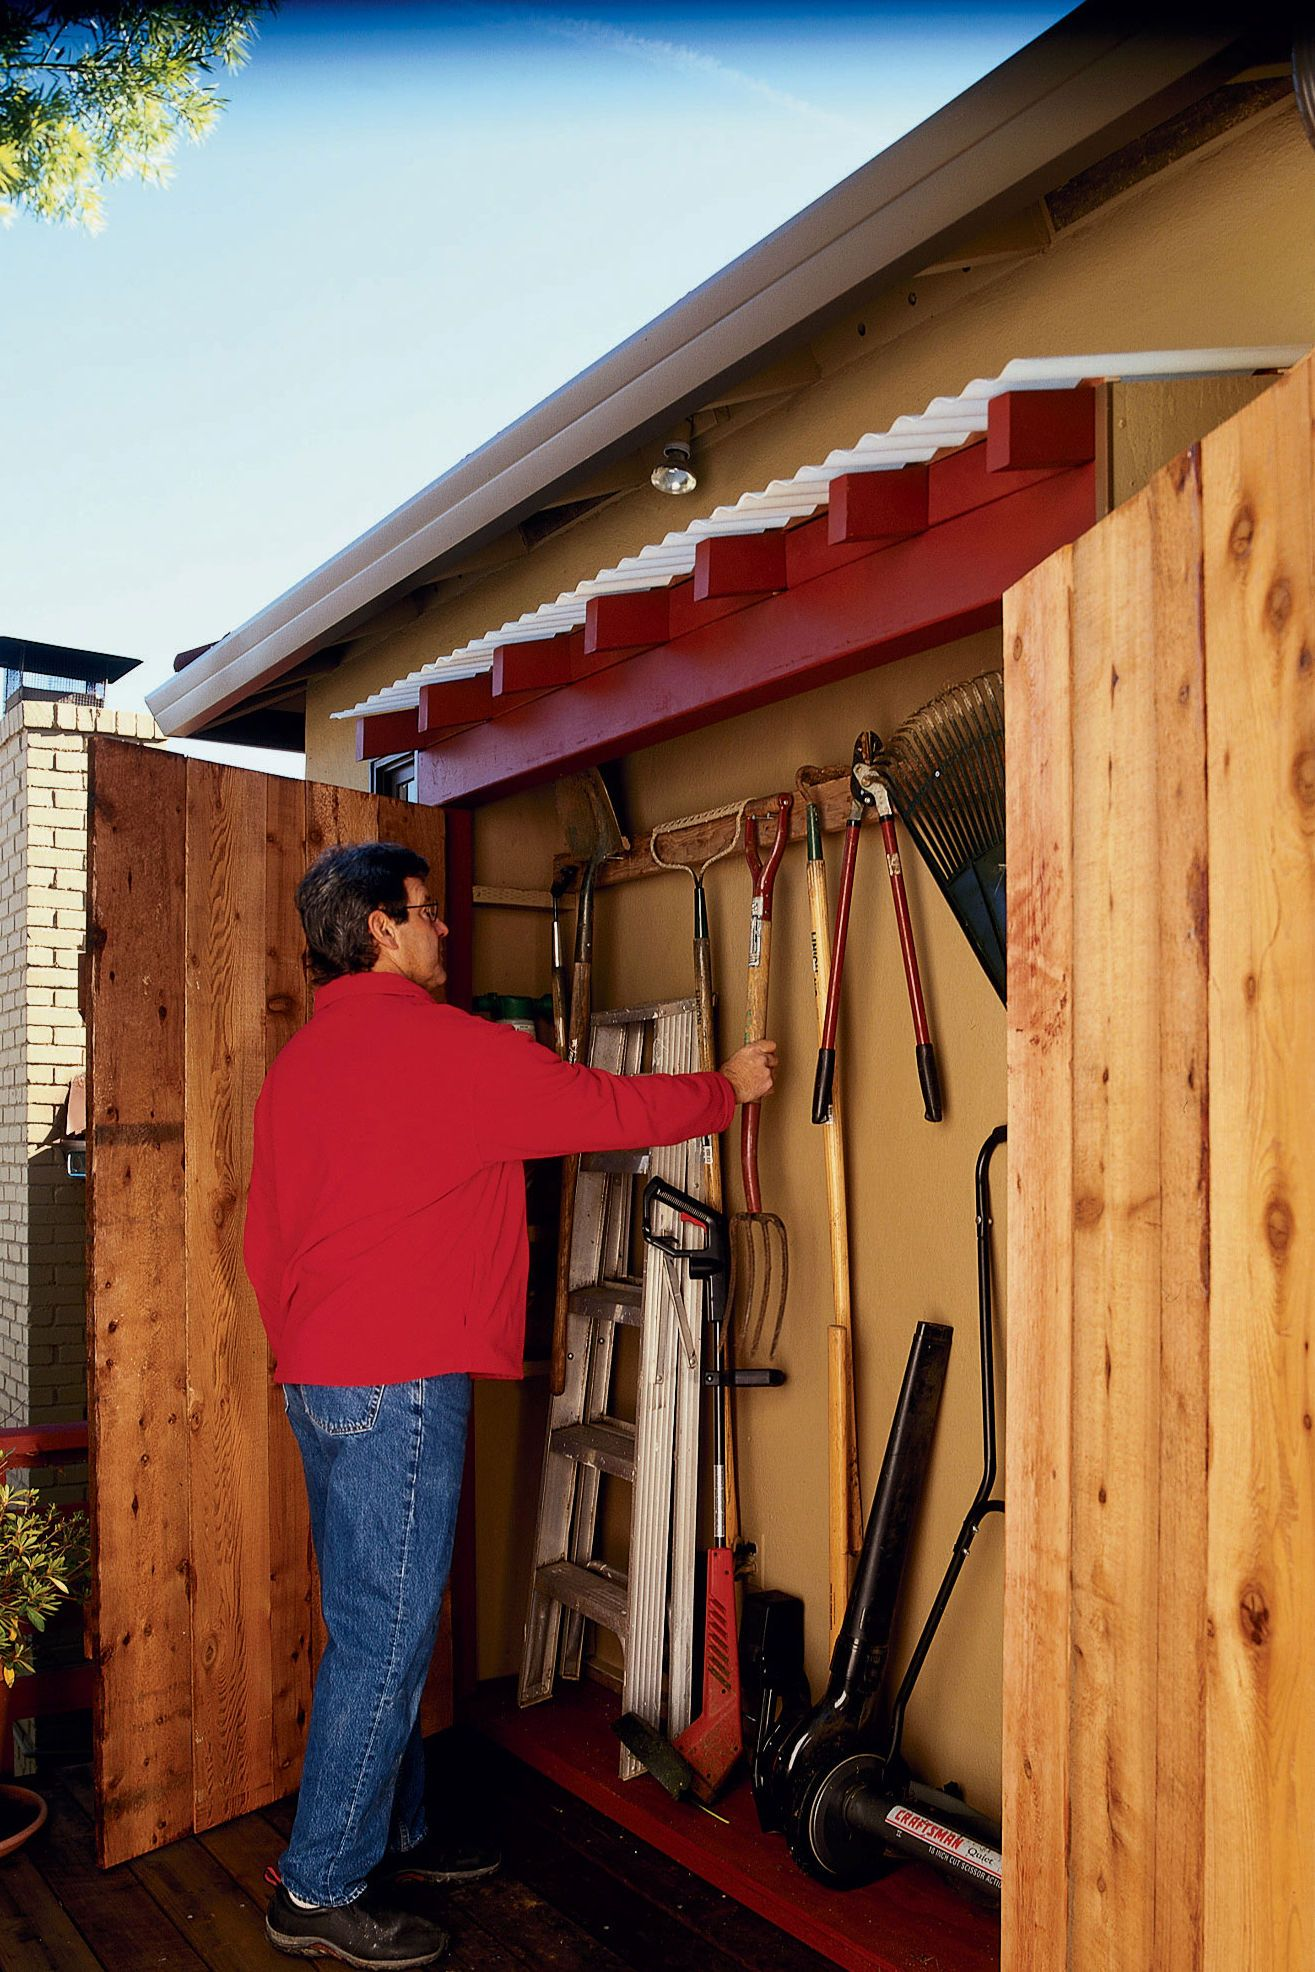 Step By Step Instructions For Building The Shell Backyard Sheds Eaves Storage Garden Tool Storage Backyard garden tool storage